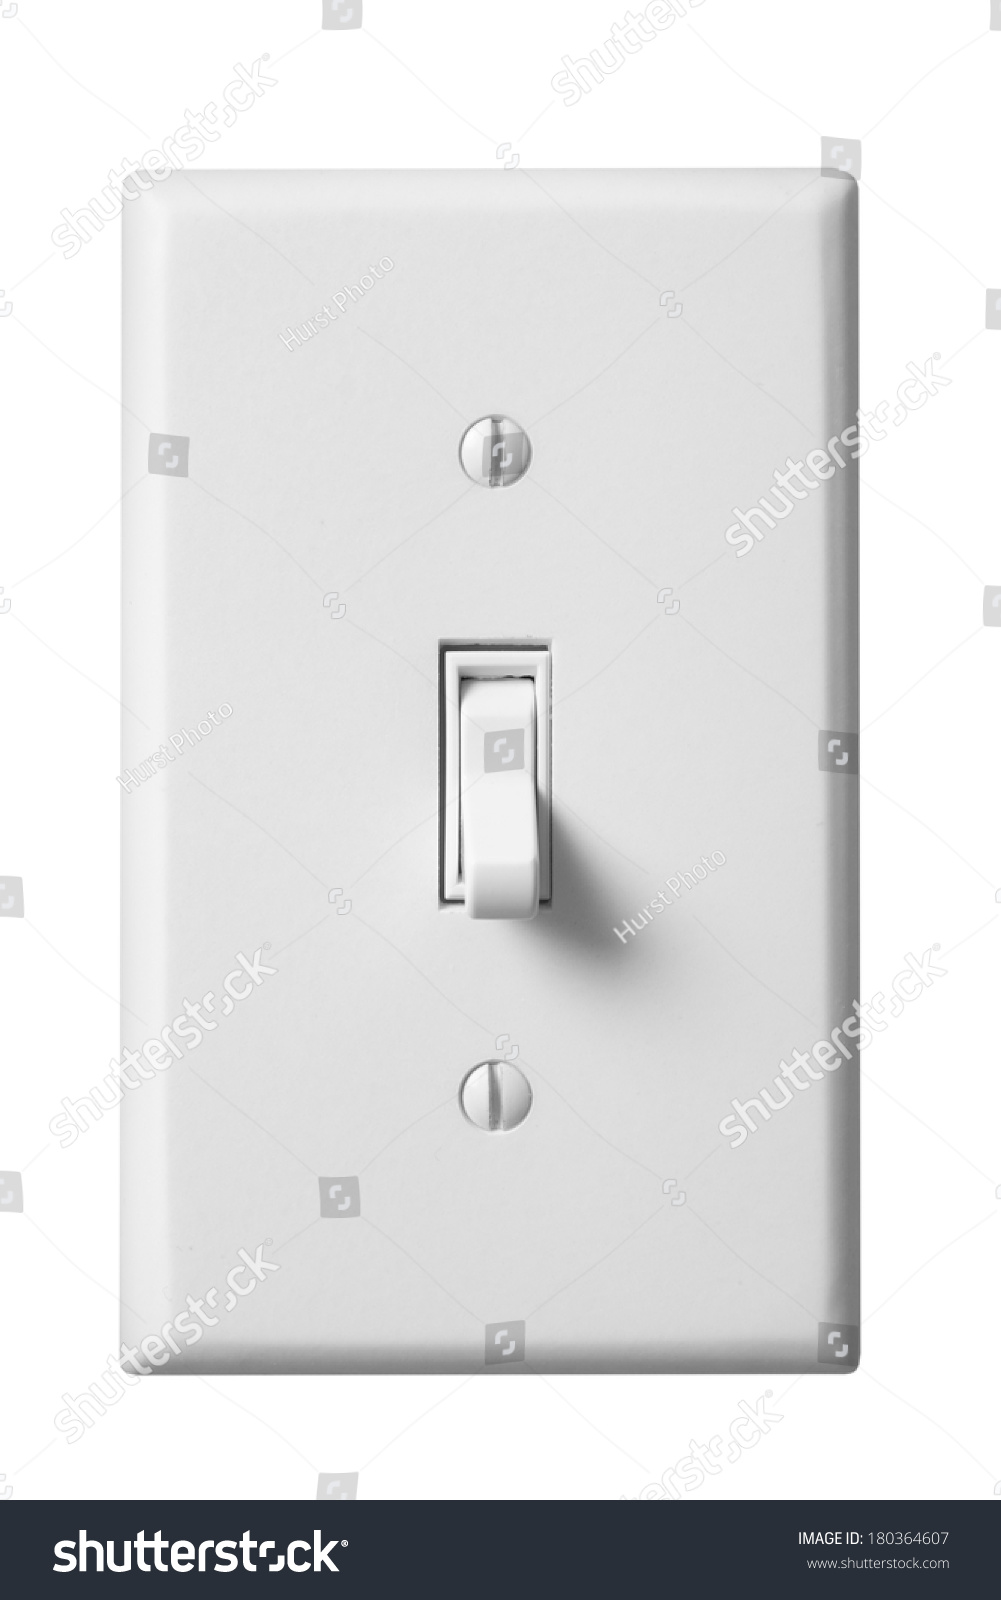 Switch Faceplate White Light Switch Faceplate On White Stock Photo 180364607